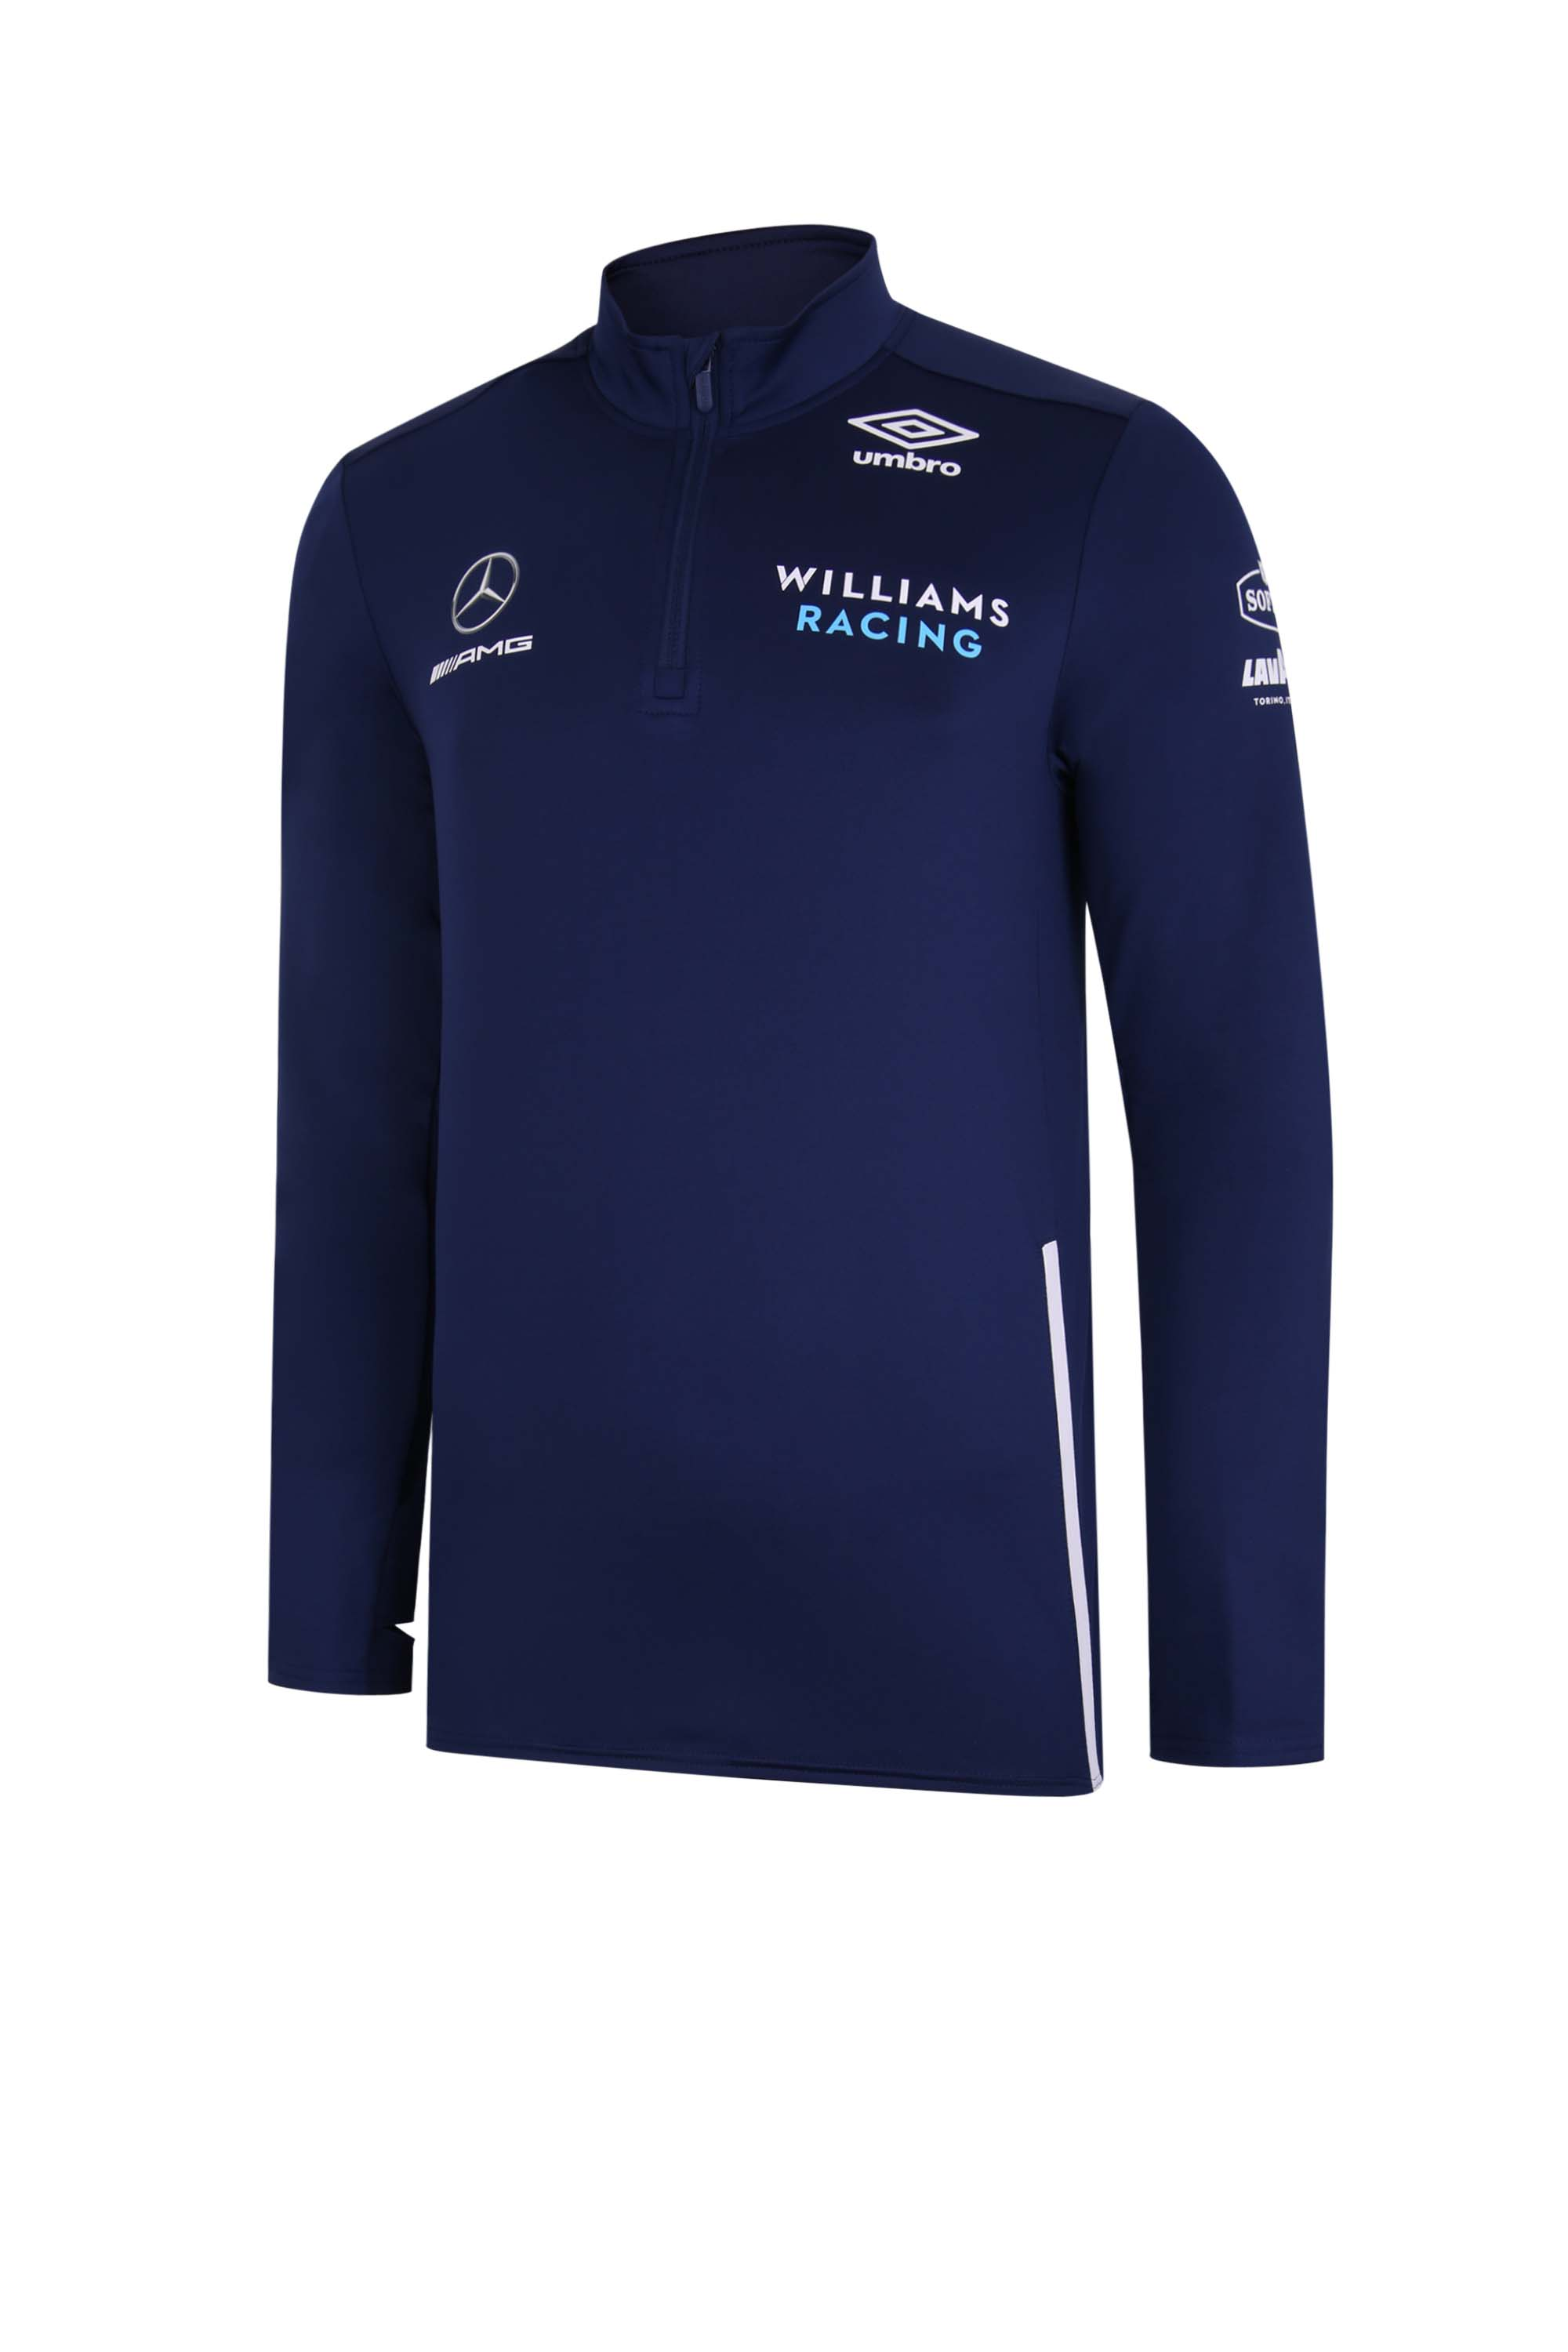 Williams F1 merchandise